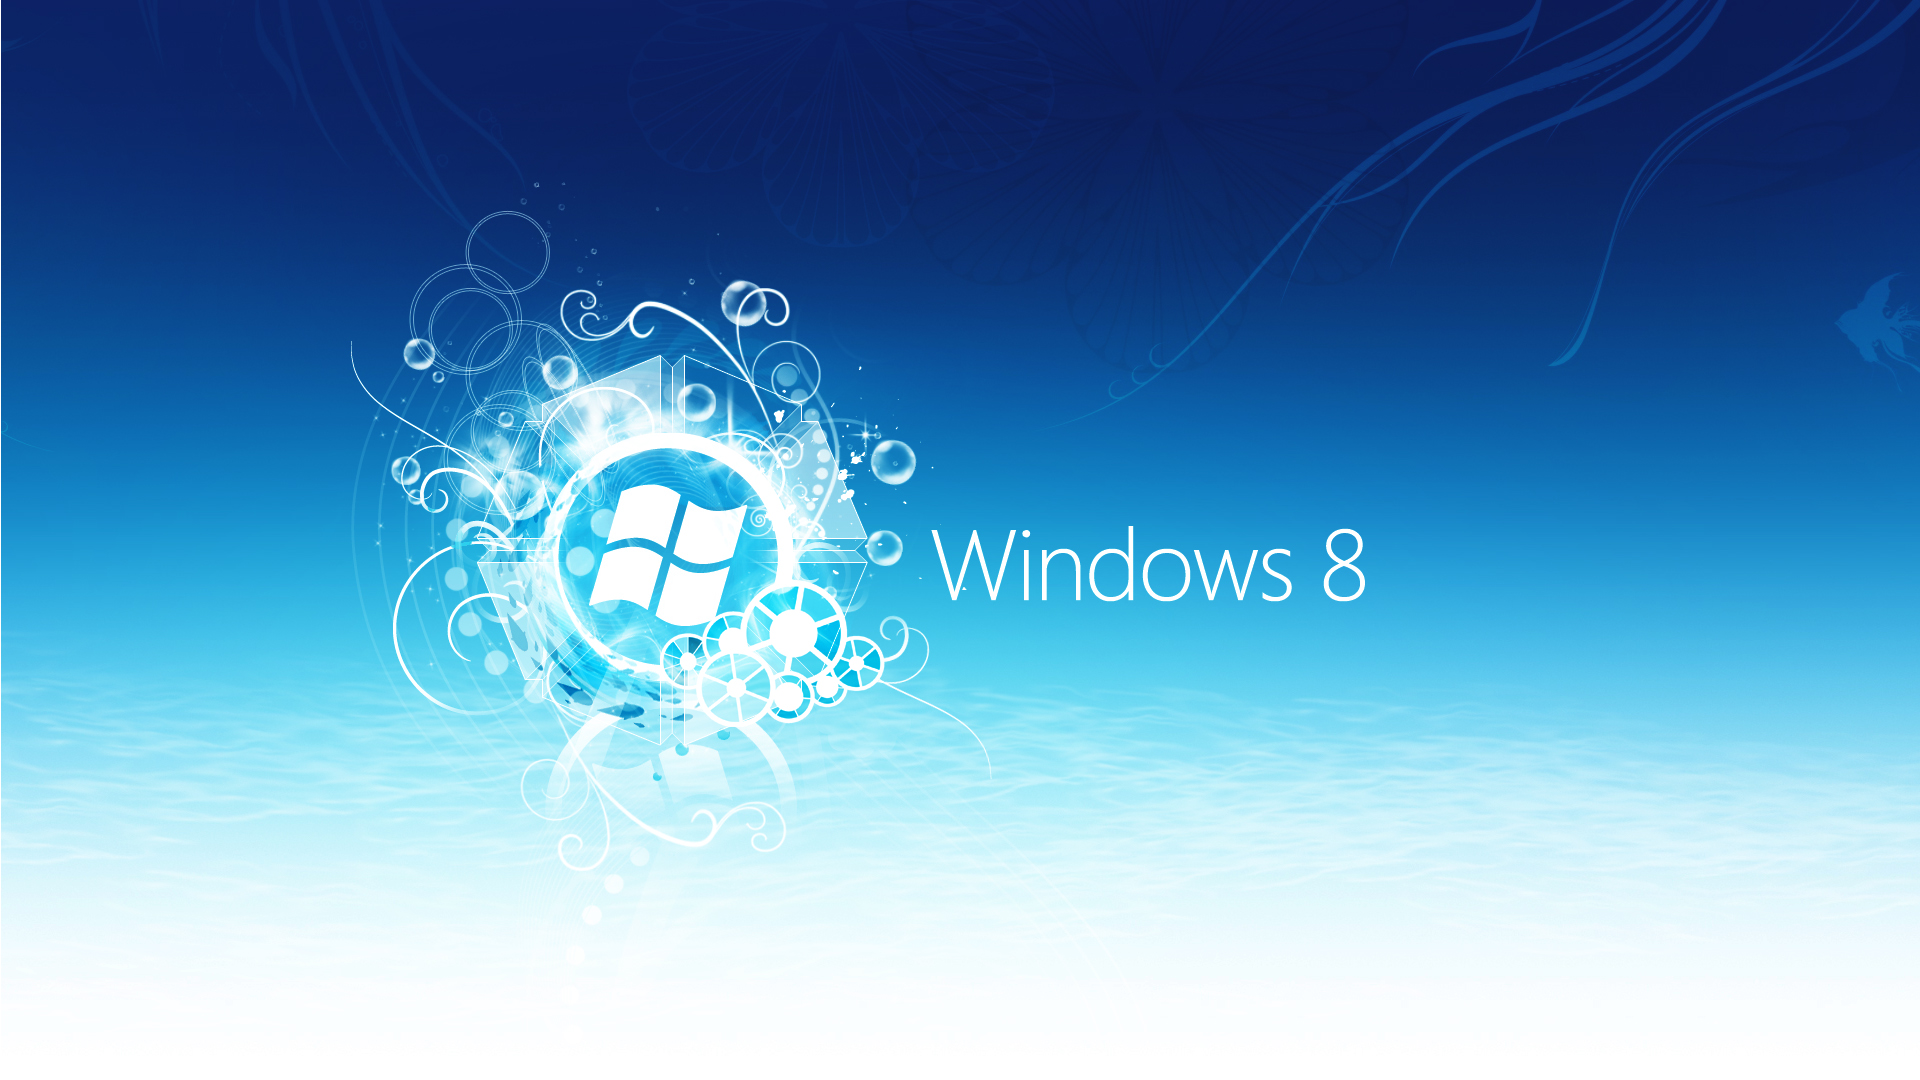 Back   Pictures for 3d live wallpaper for windows 8 1920x1080